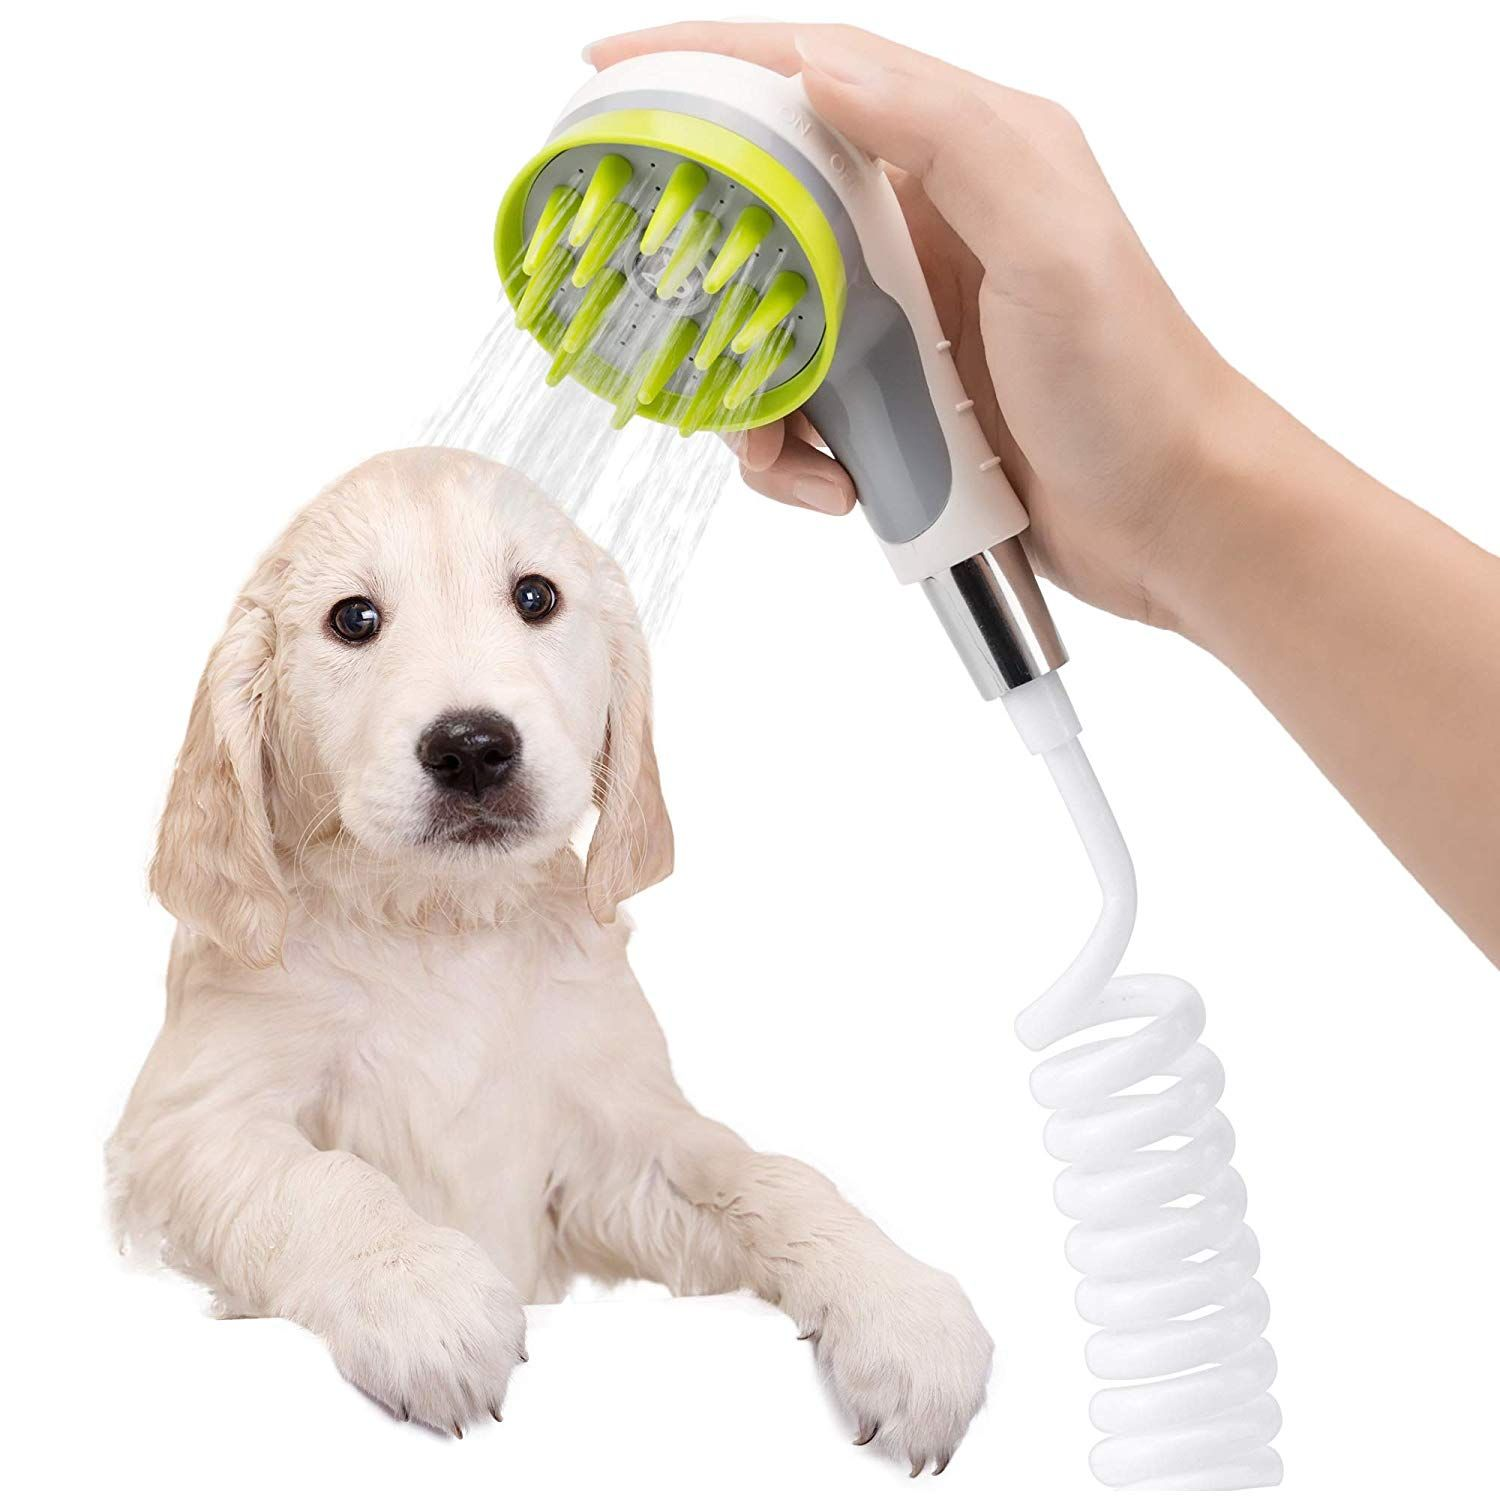 Pin On Dog Grooming